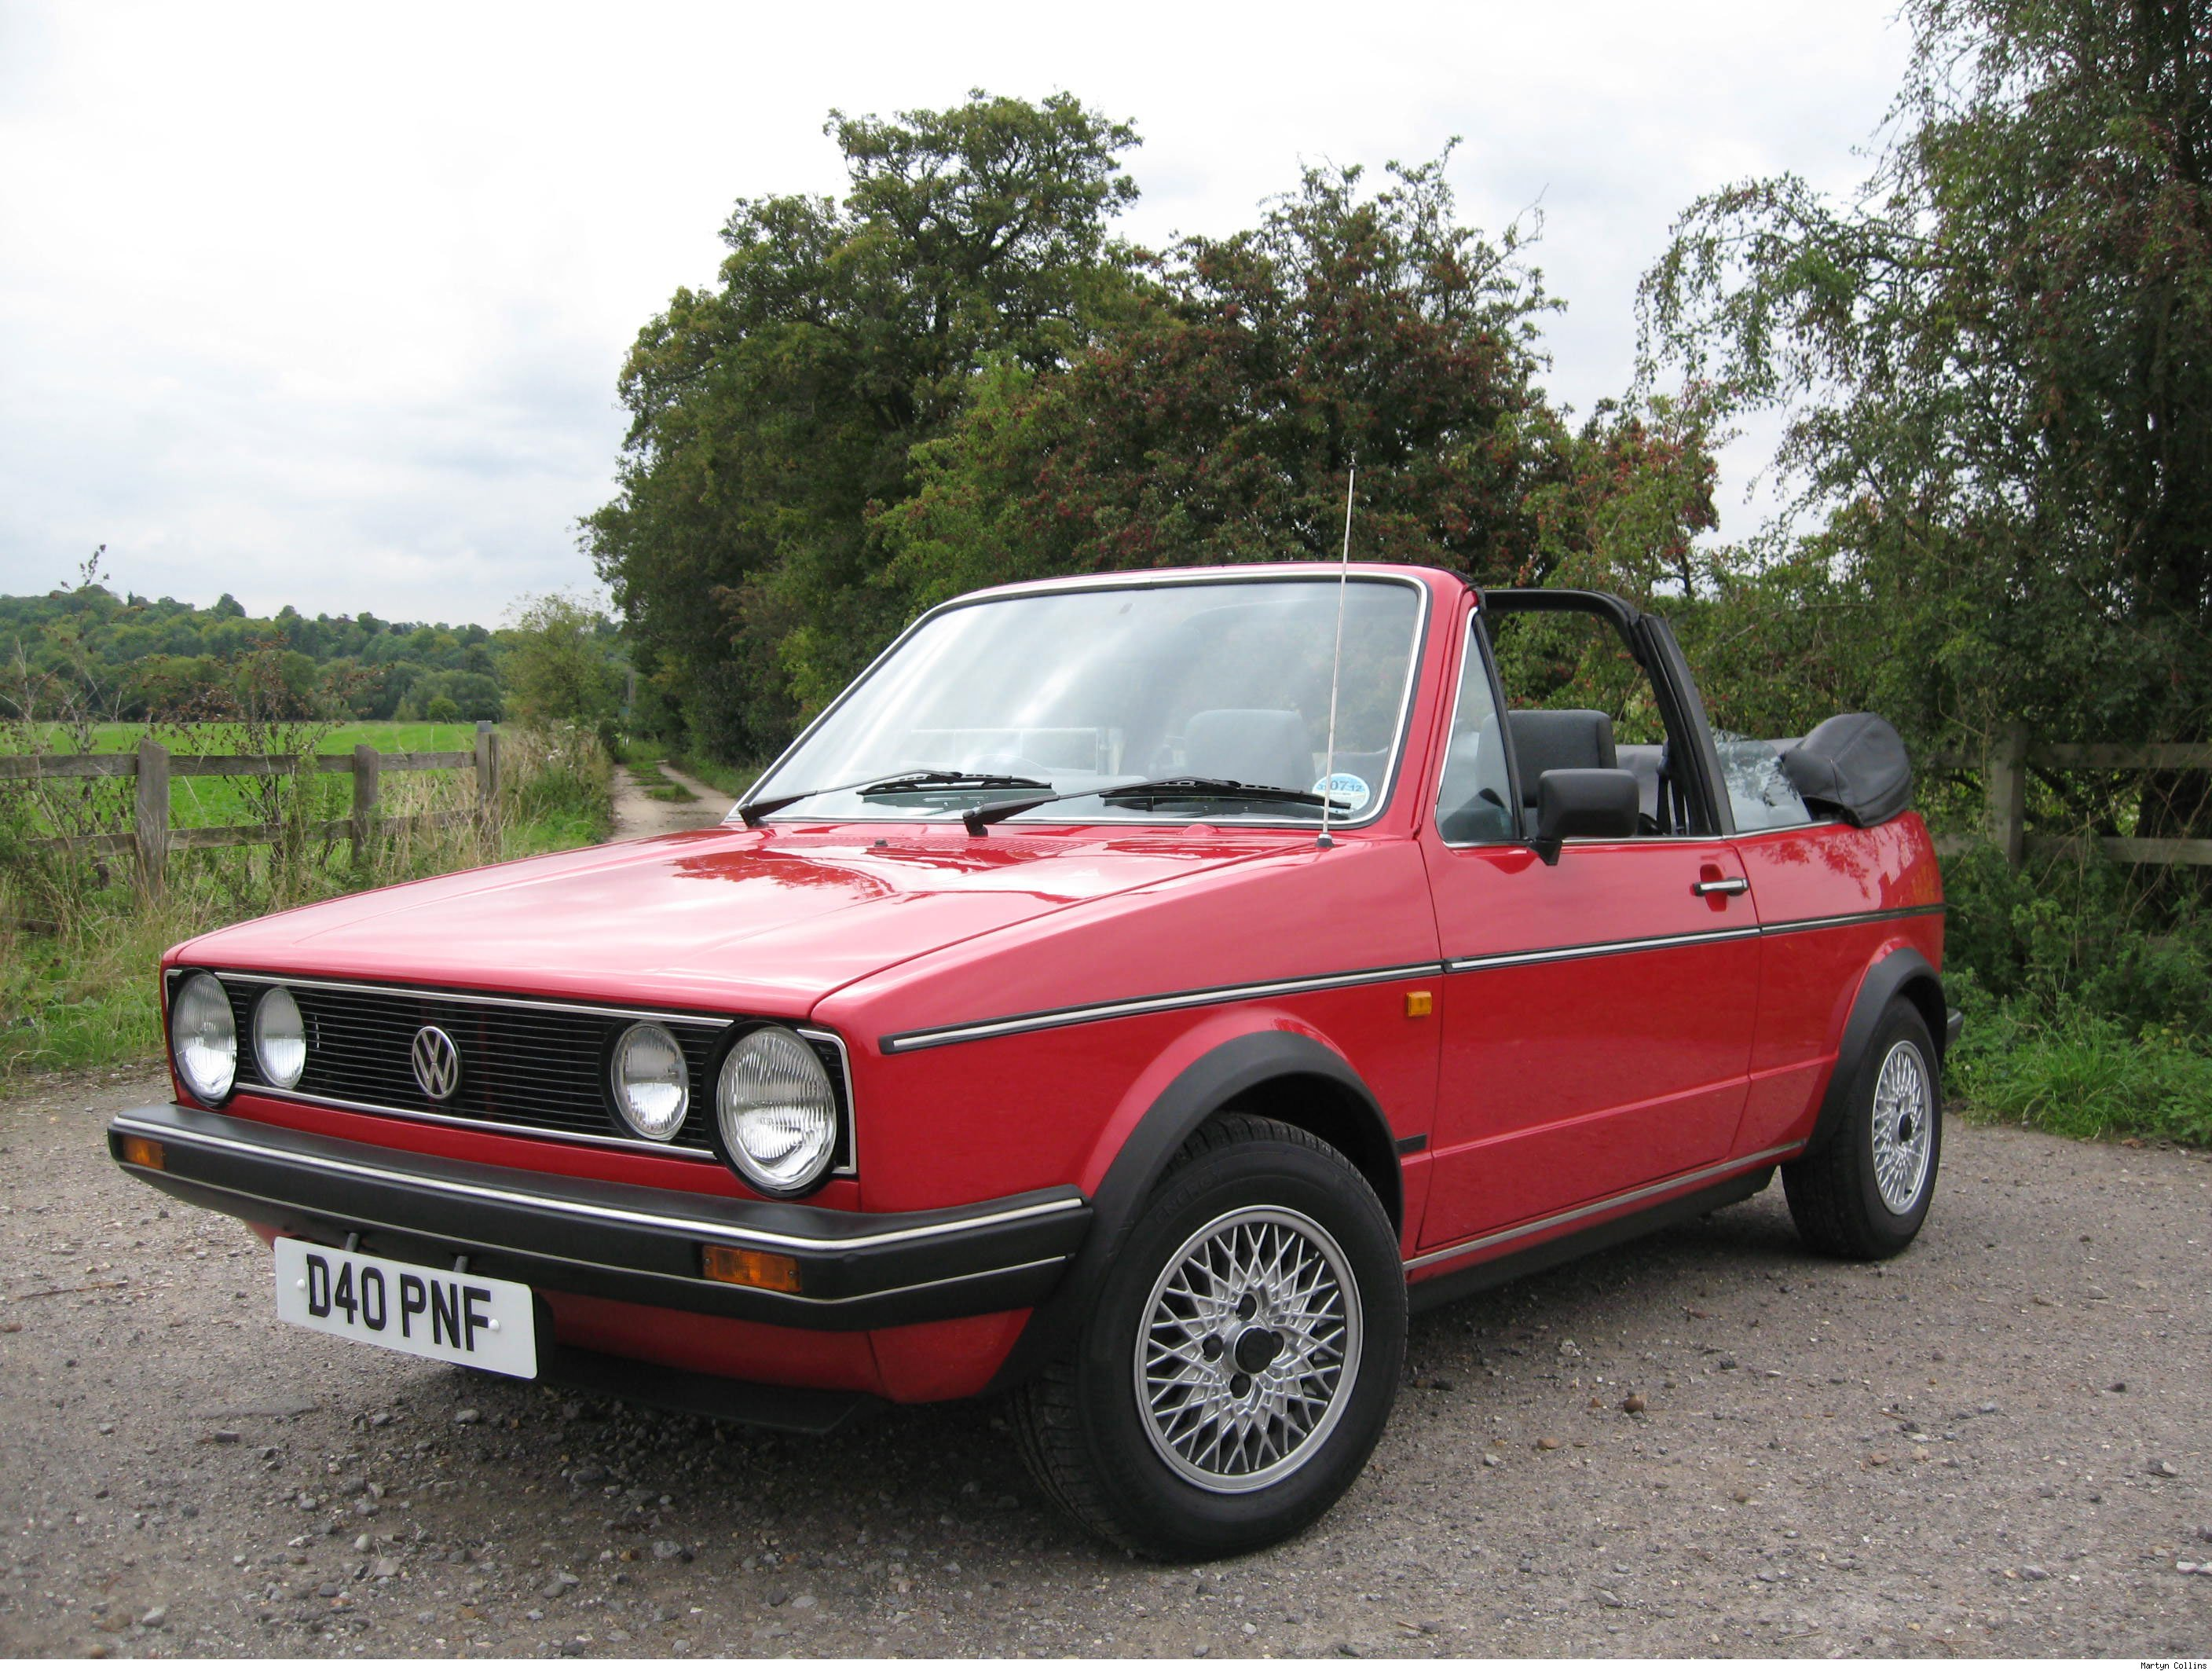 mk1 golf cabriolet still classy after 24 years aol cars uk. Black Bedroom Furniture Sets. Home Design Ideas